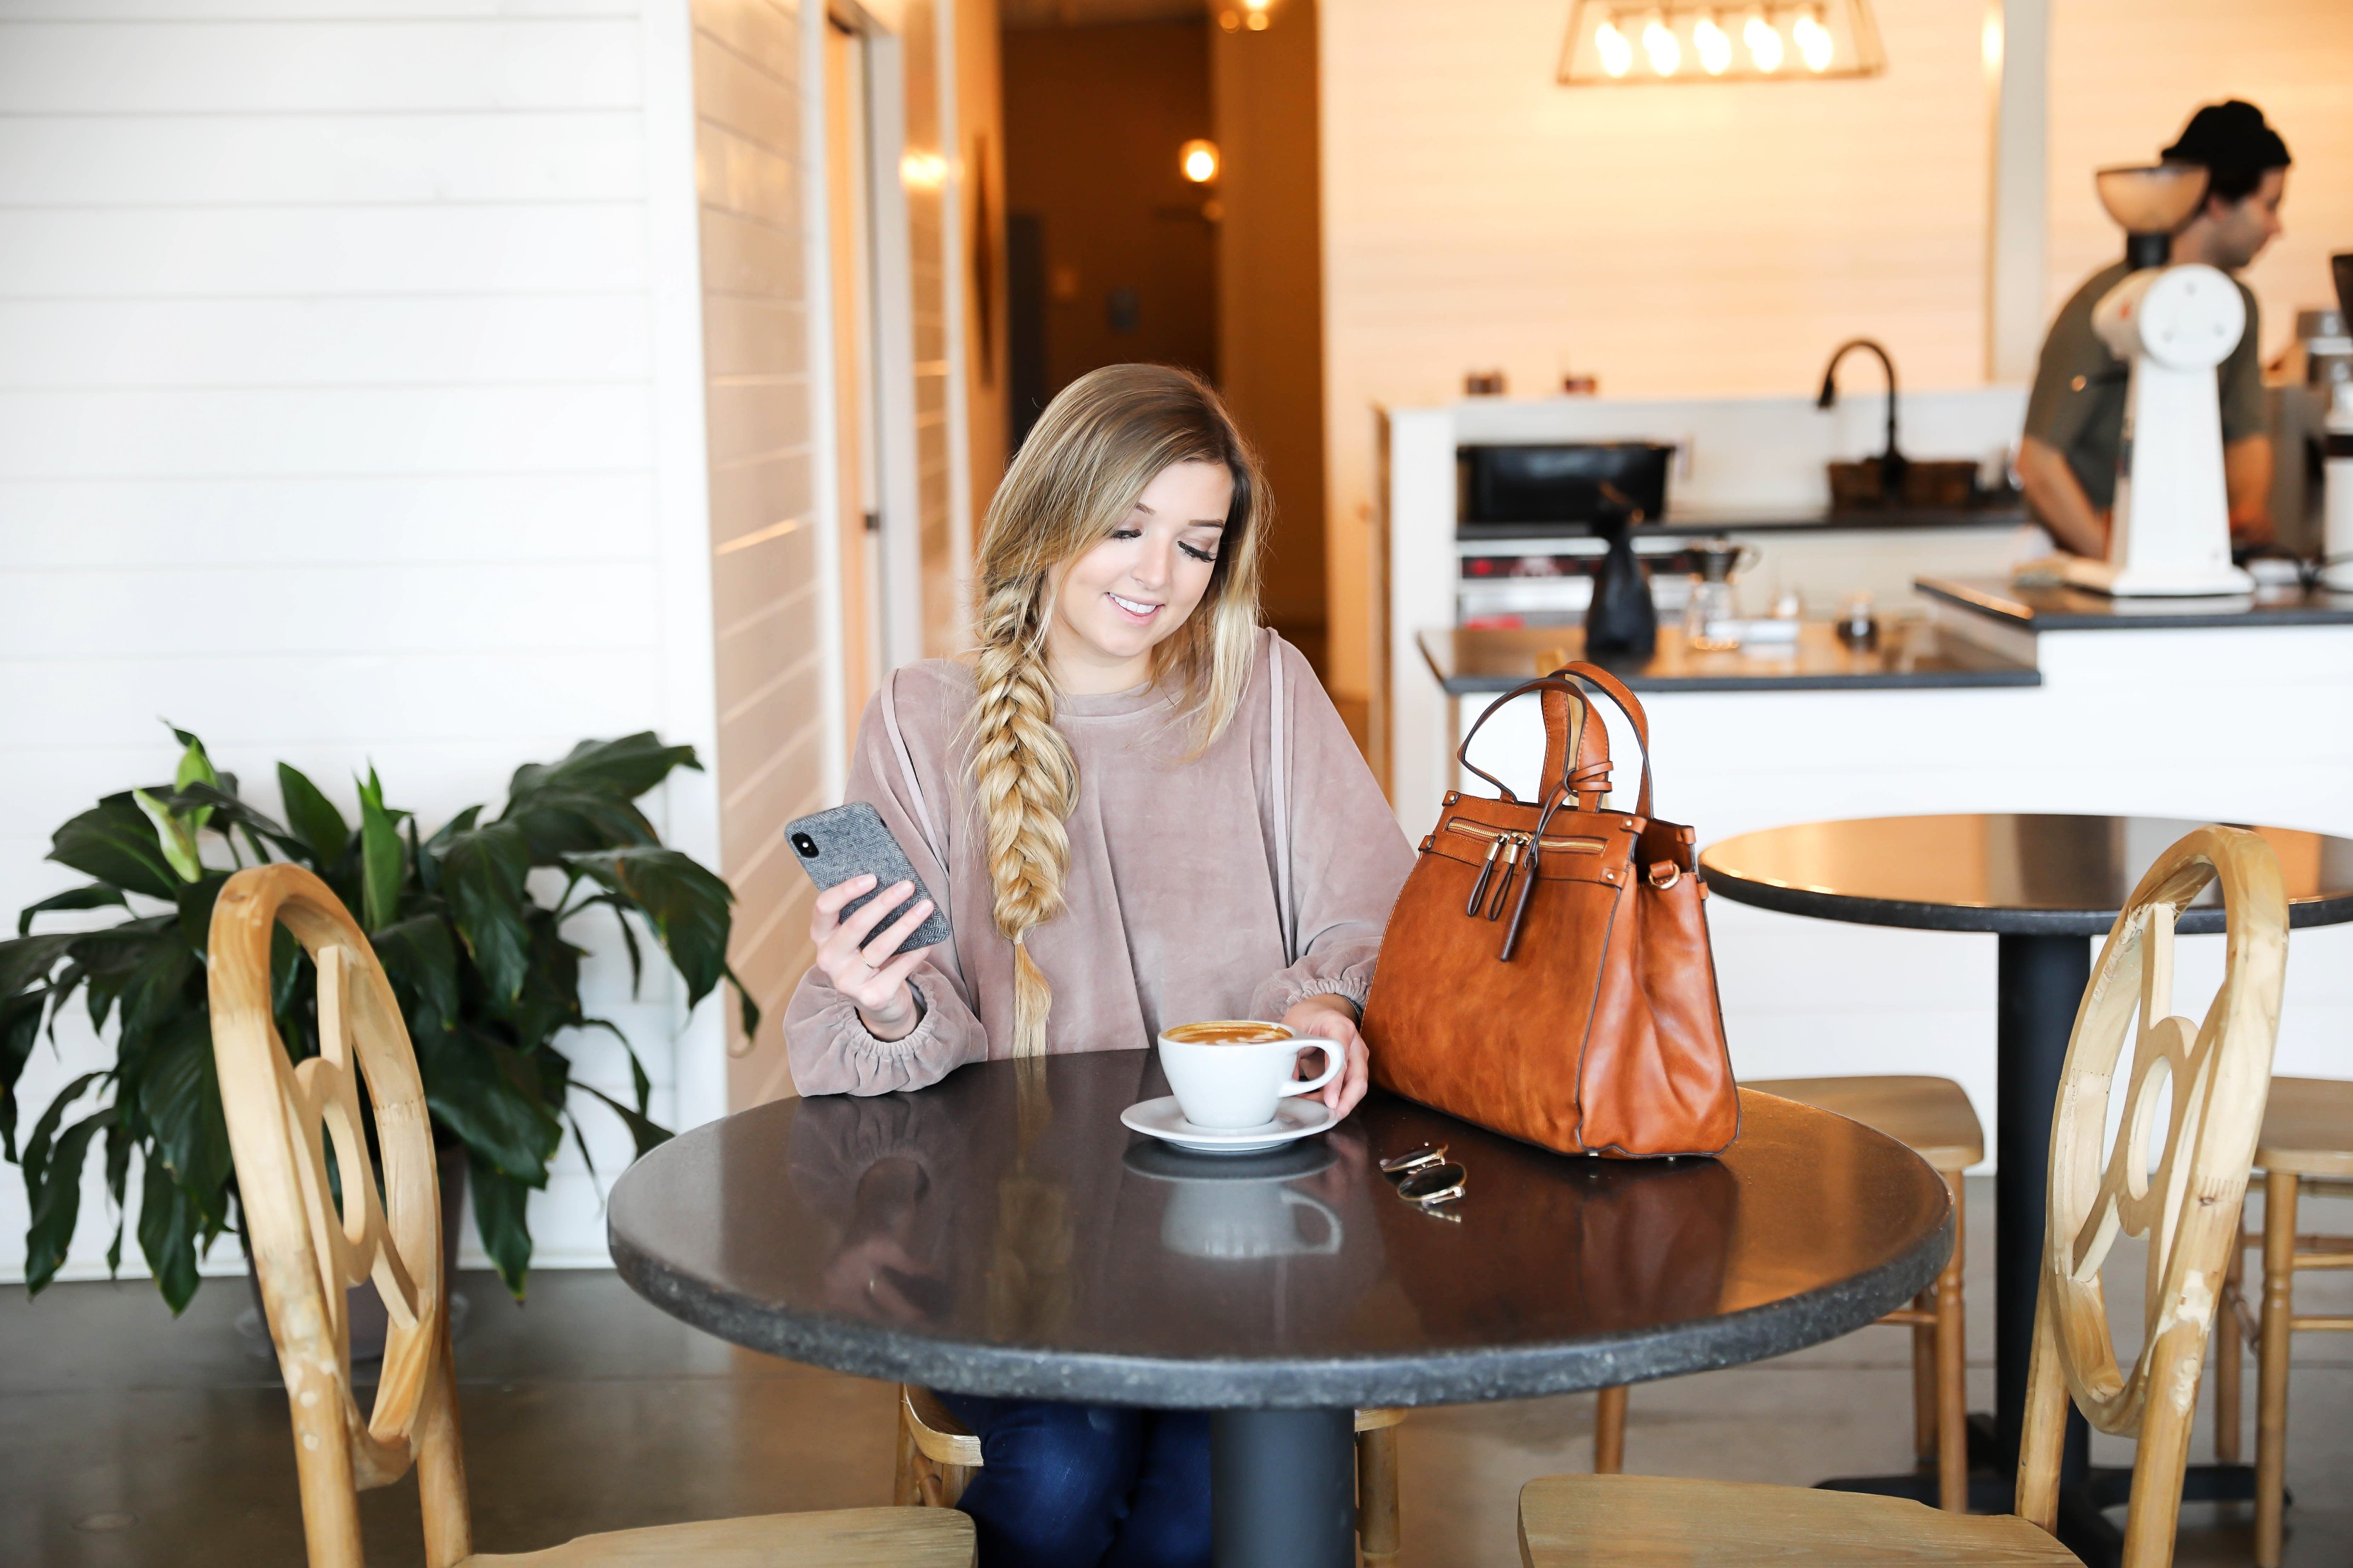 How I boosted my Instagram Engagement by 50%! My tips and tricks for growing an authentic following on Instagram and boosting your likes! Coffee shop date photoshoot! I love this herringbone fall phone case with my Sole Society faux leather bag! I love this velvet sweatshirt with my fishtail braid! Details on fashion blog daily dose of charm by lauren lindmark